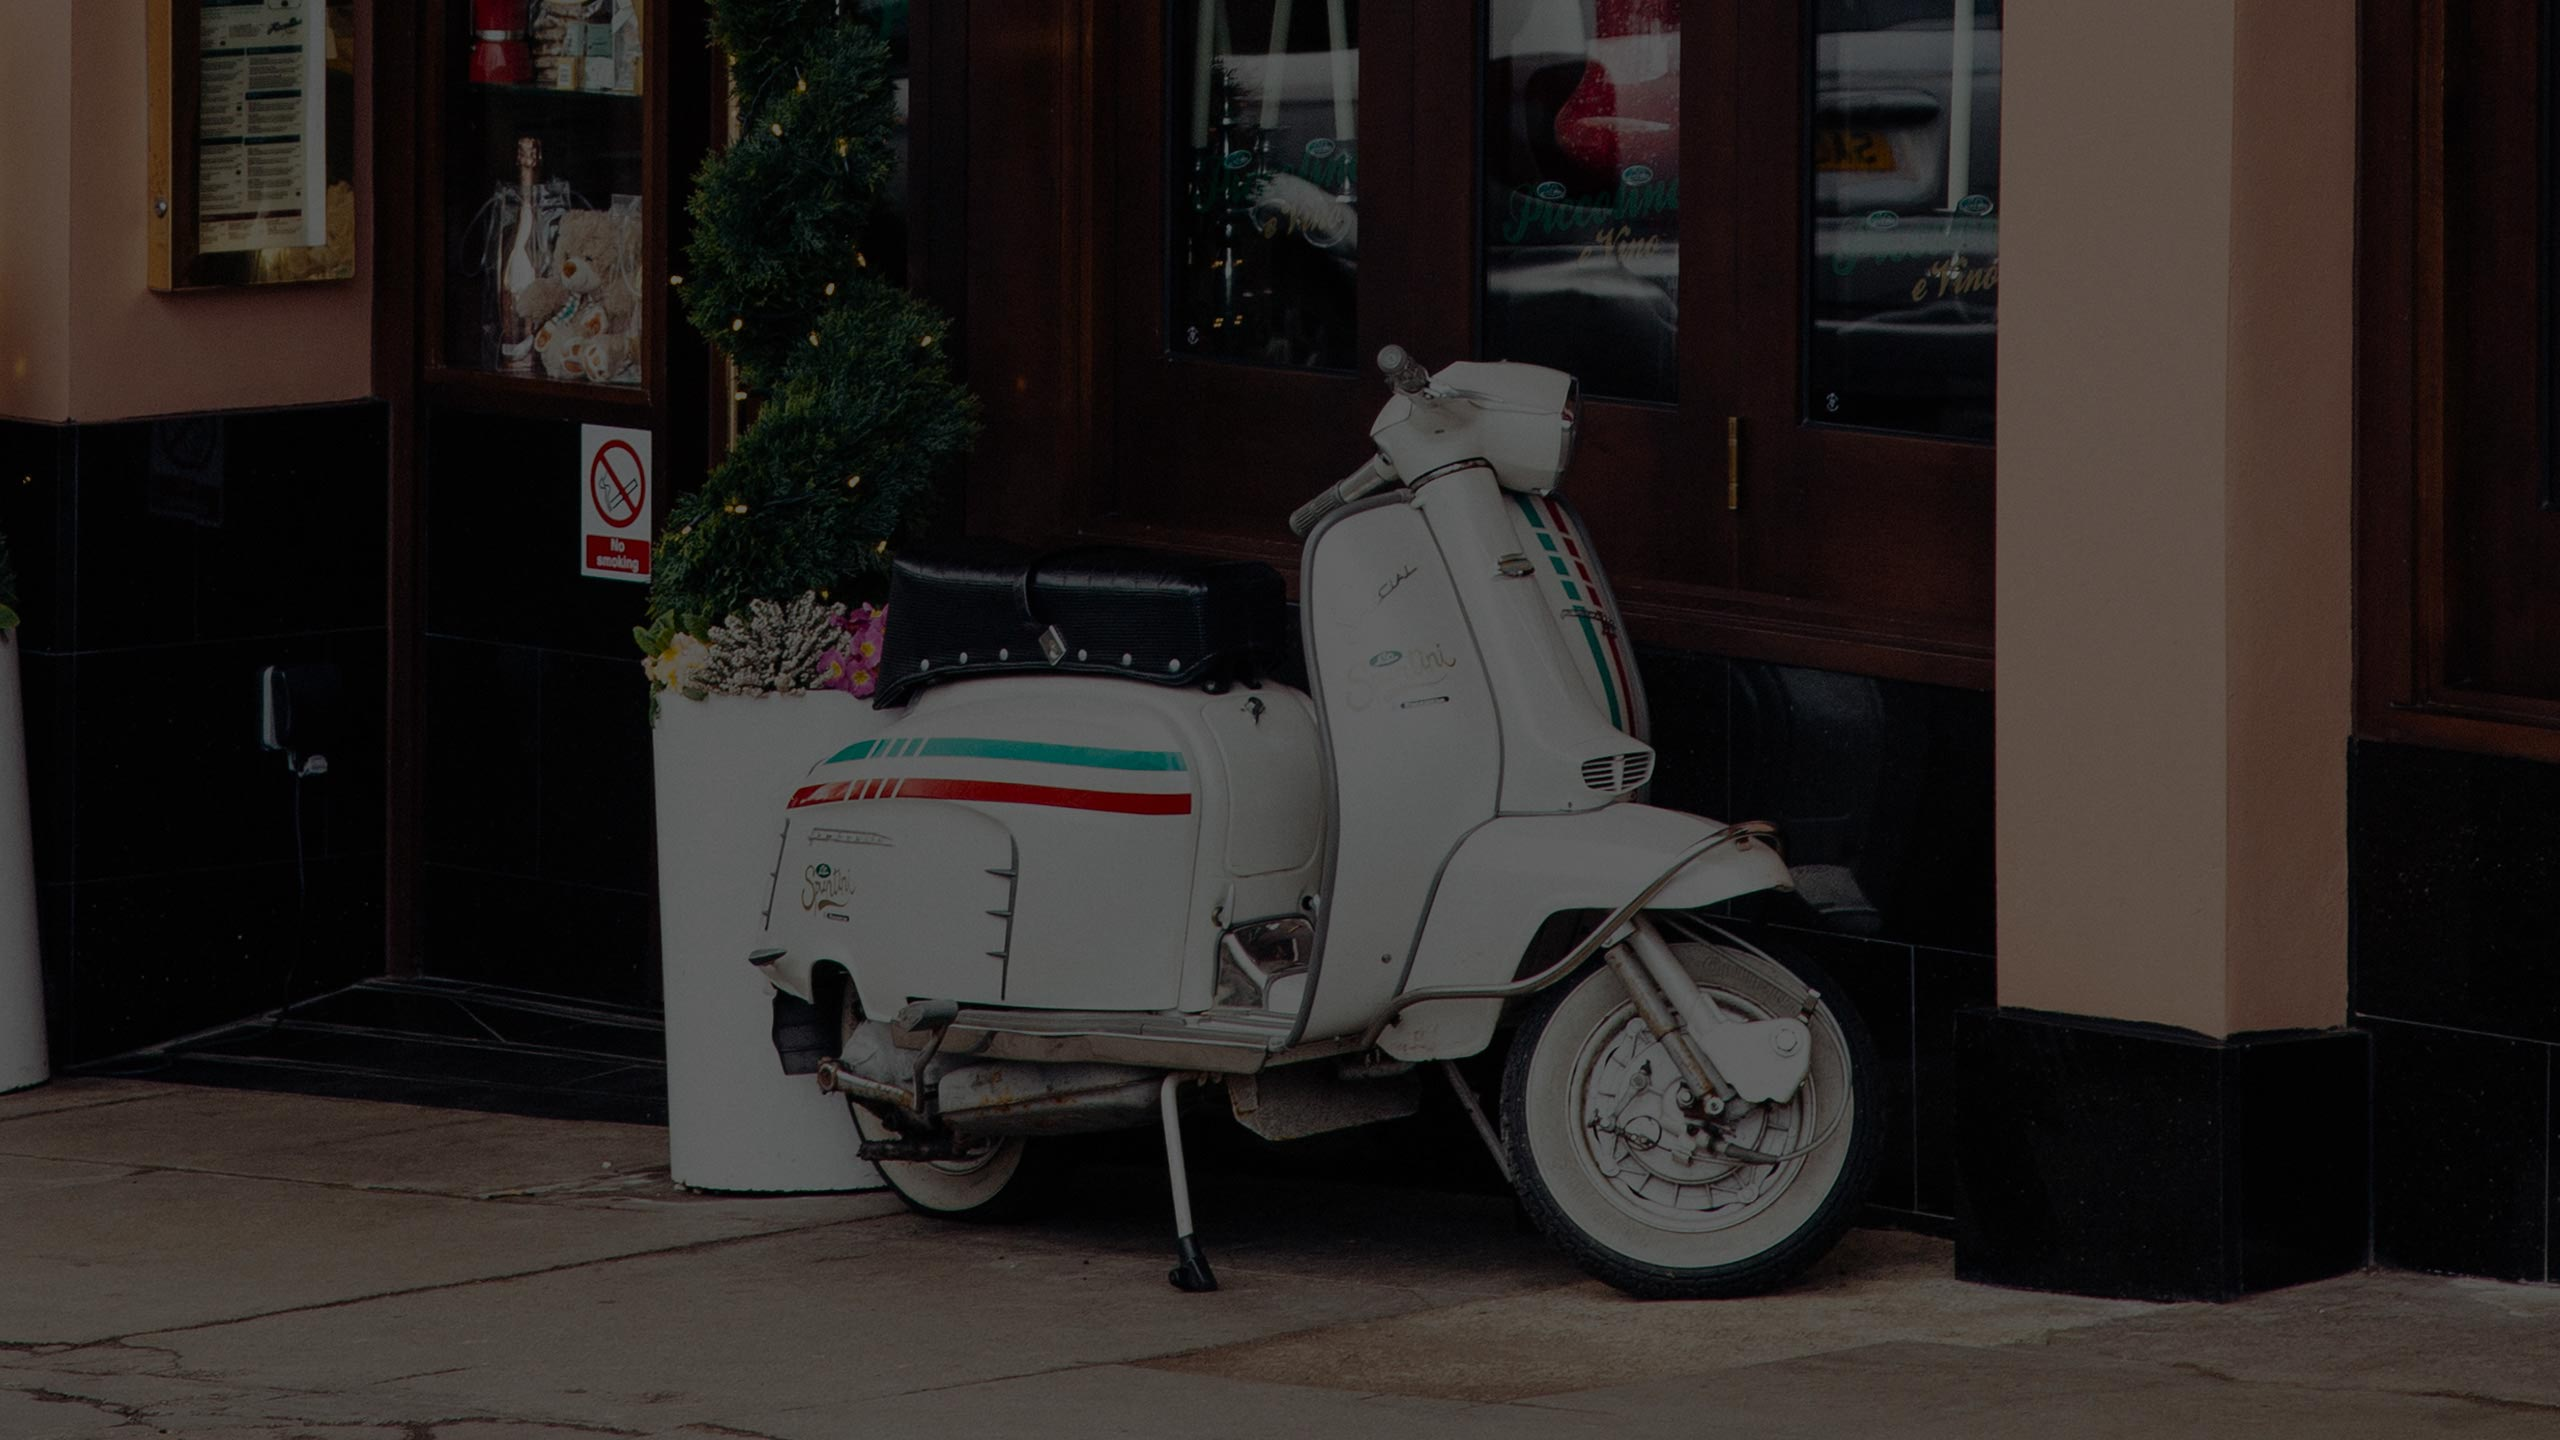 Italian scooter outside piccolino e vino southside